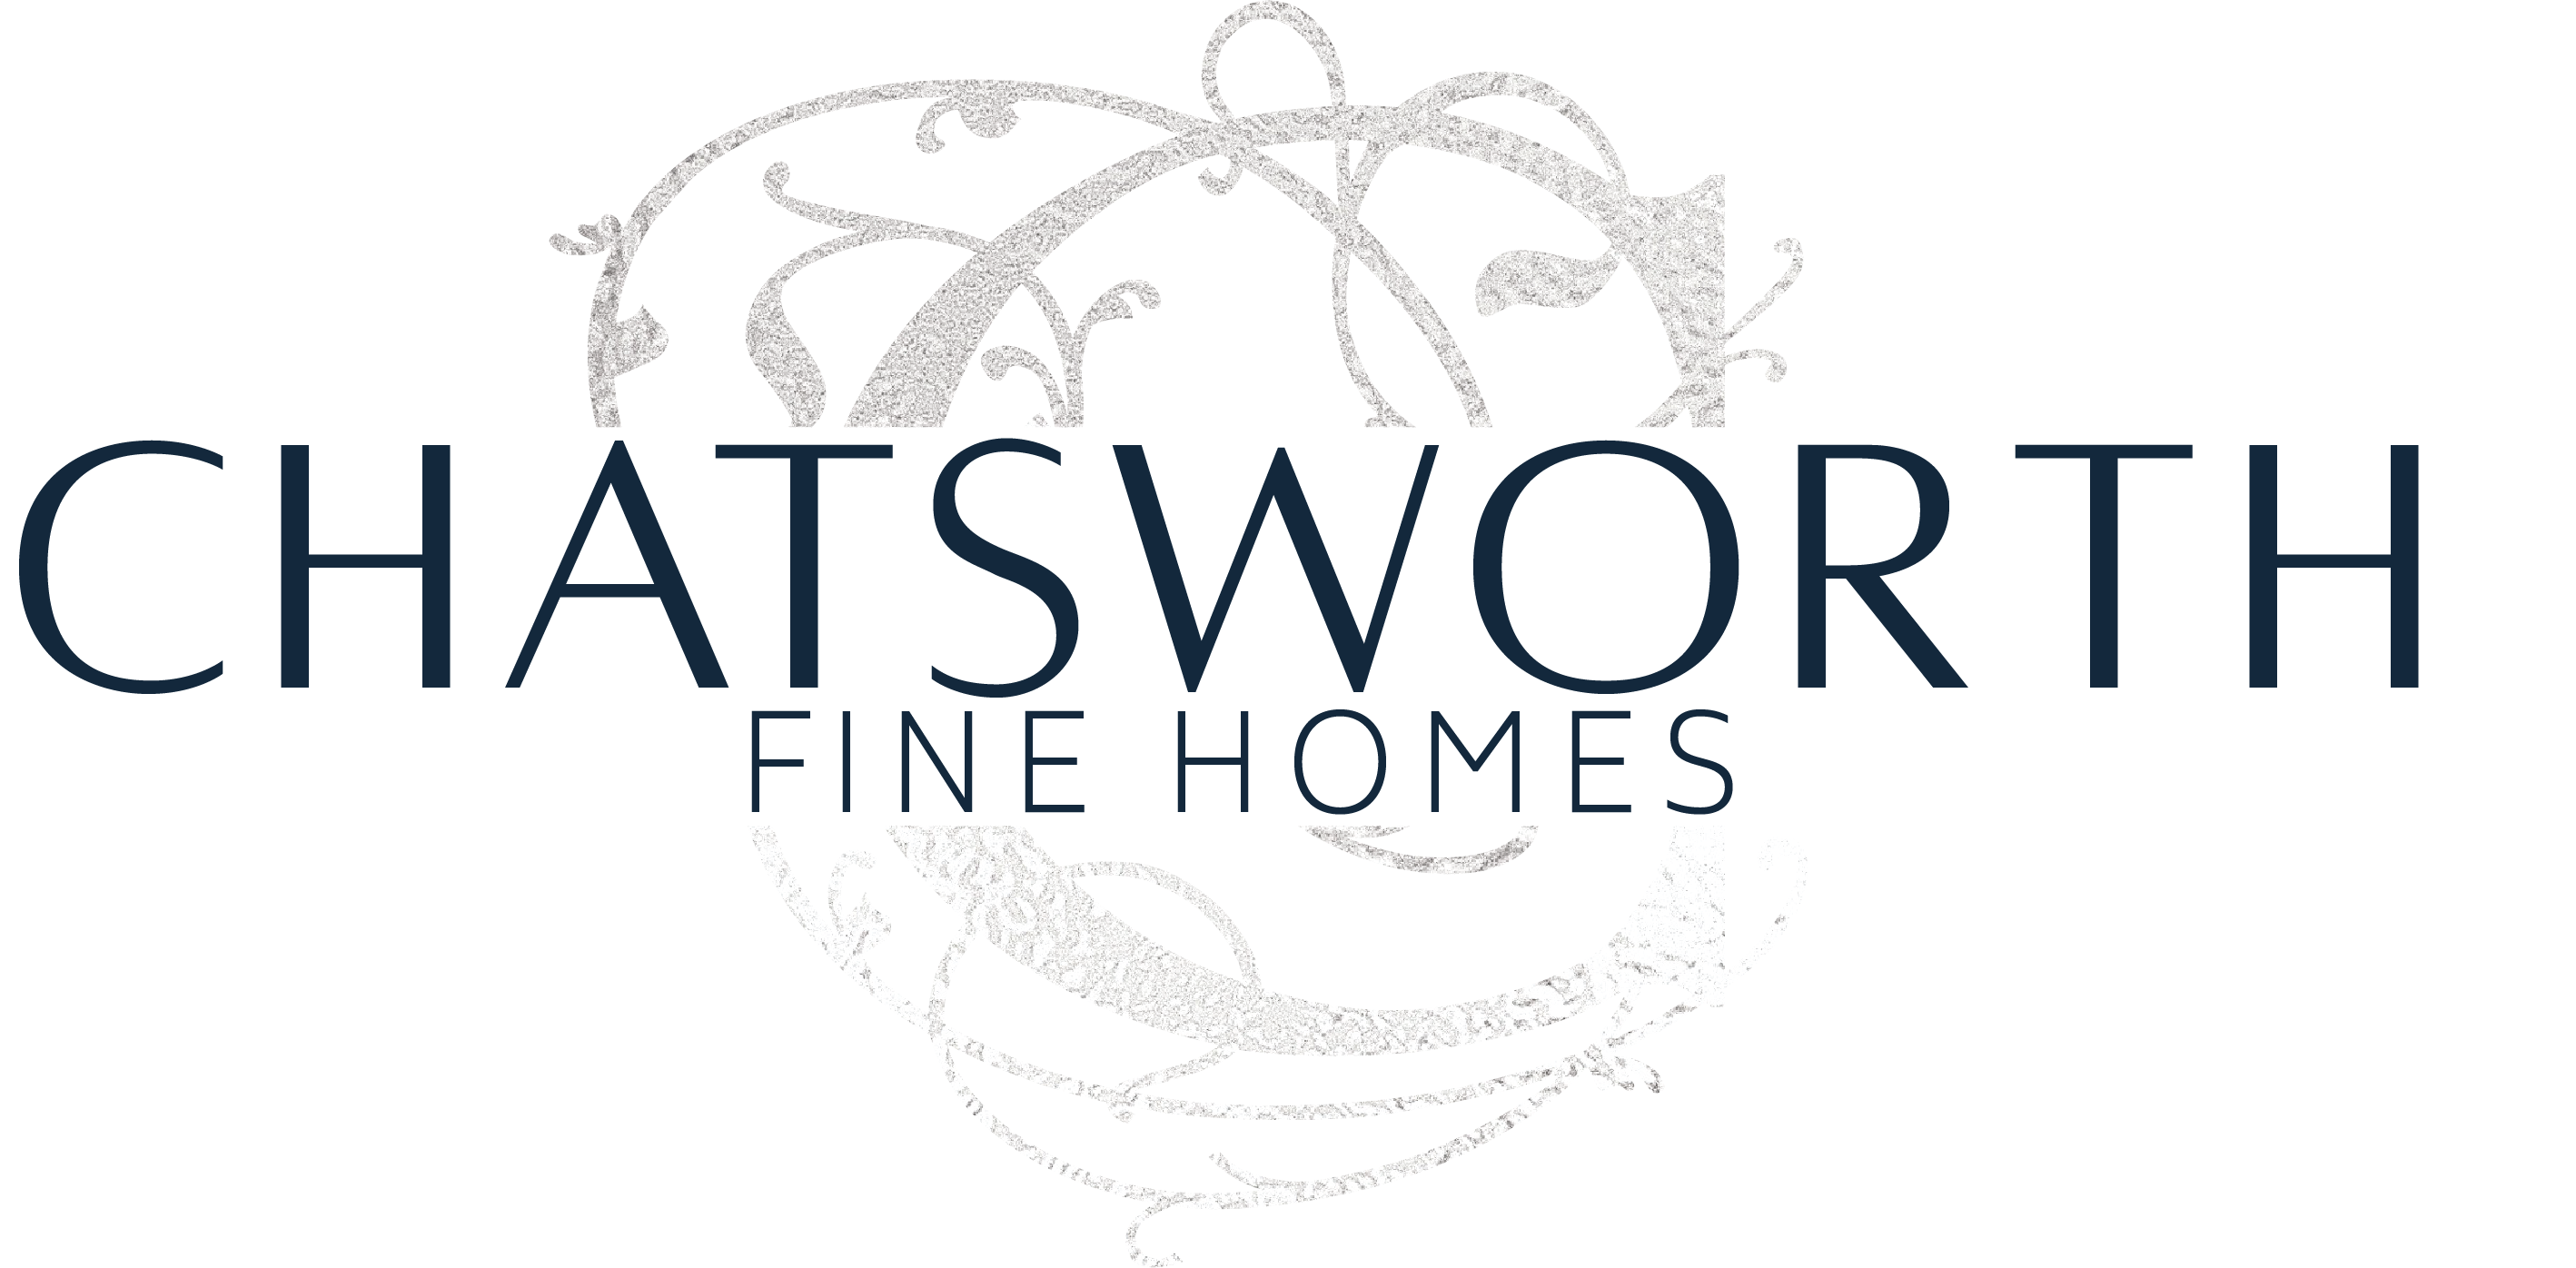 Chatsworth Fine Homes